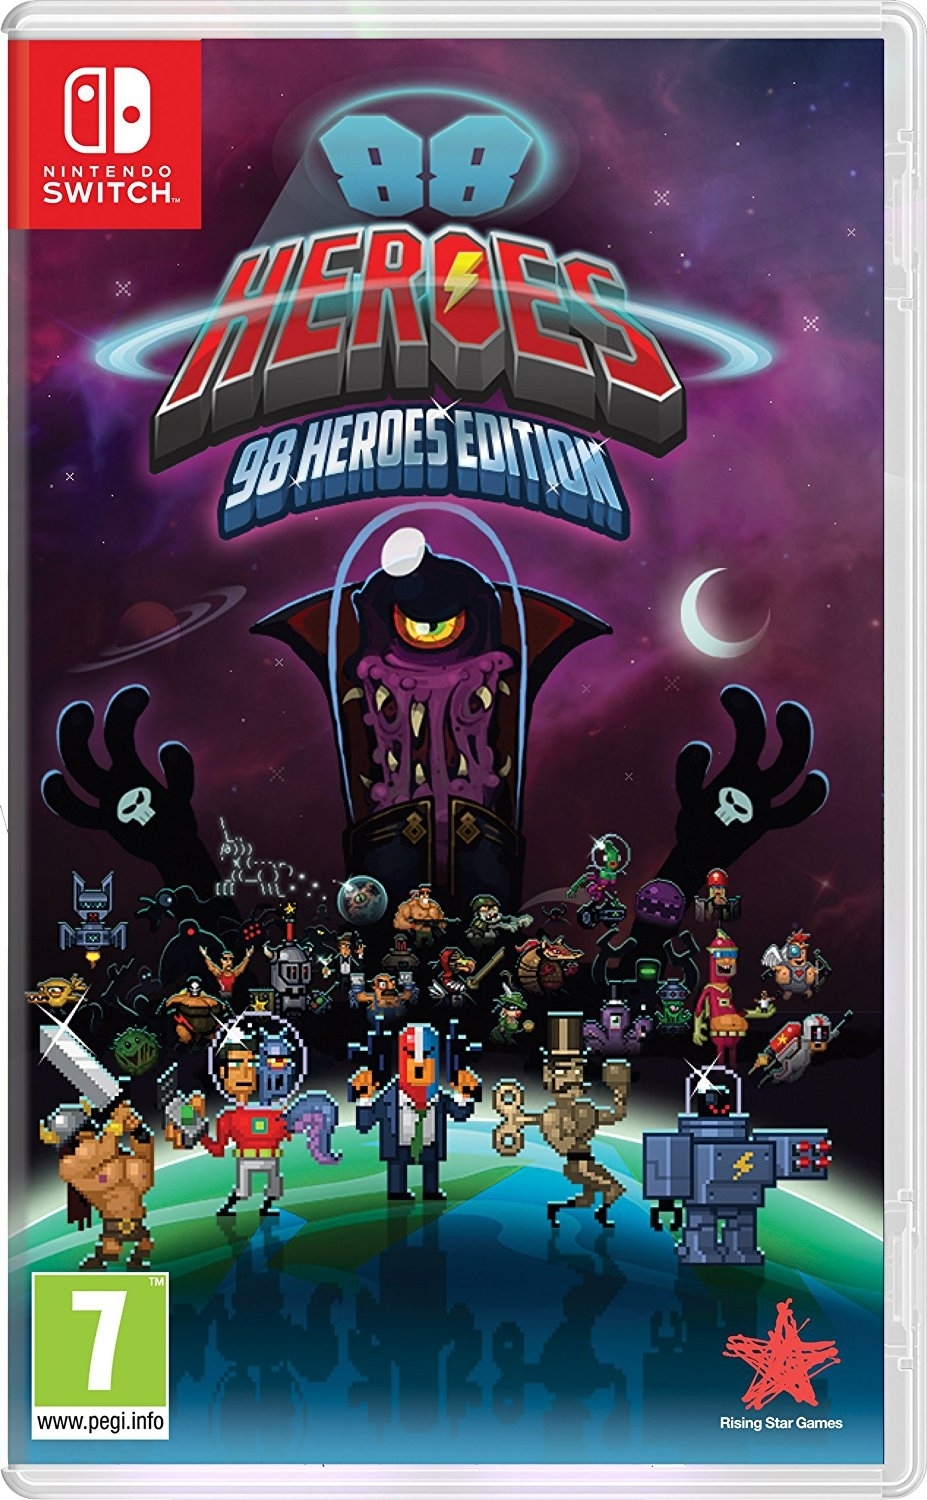 88 Heroes: 98 Heroes Edition Nintendo Switch